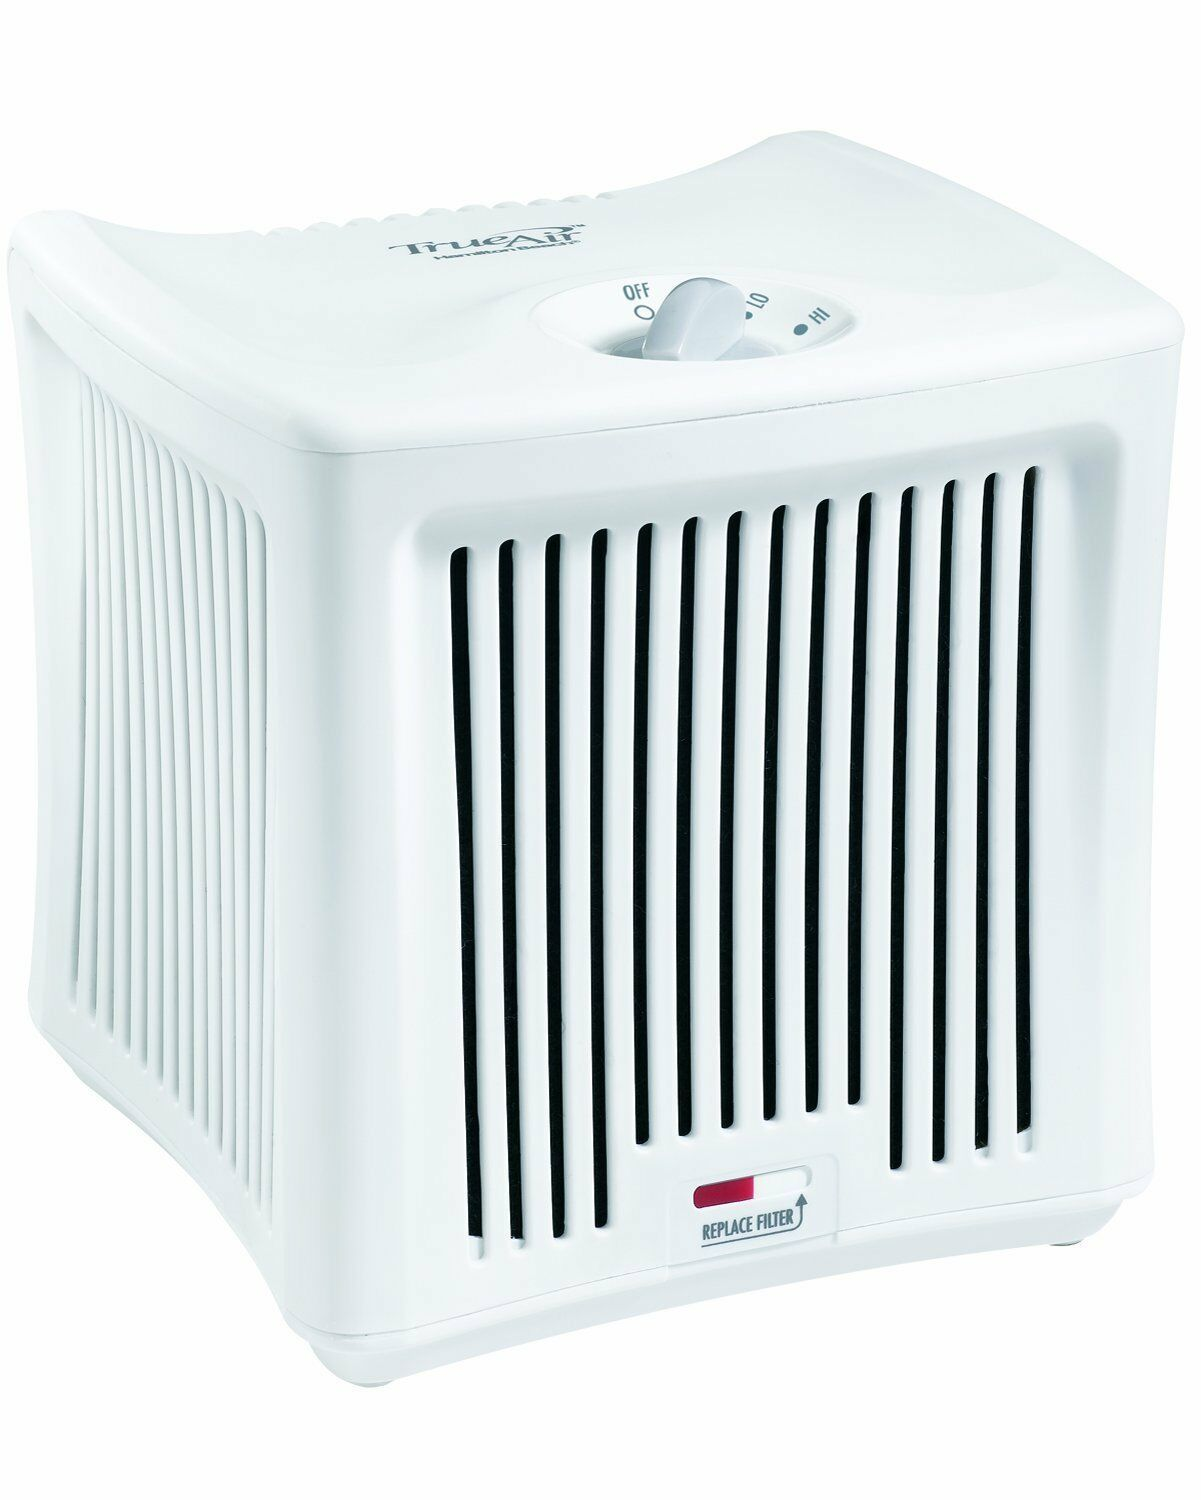 Hamilton Beach TrueAir Room Odor Eliminator Air Purifier Smoke Smell Remover Sys